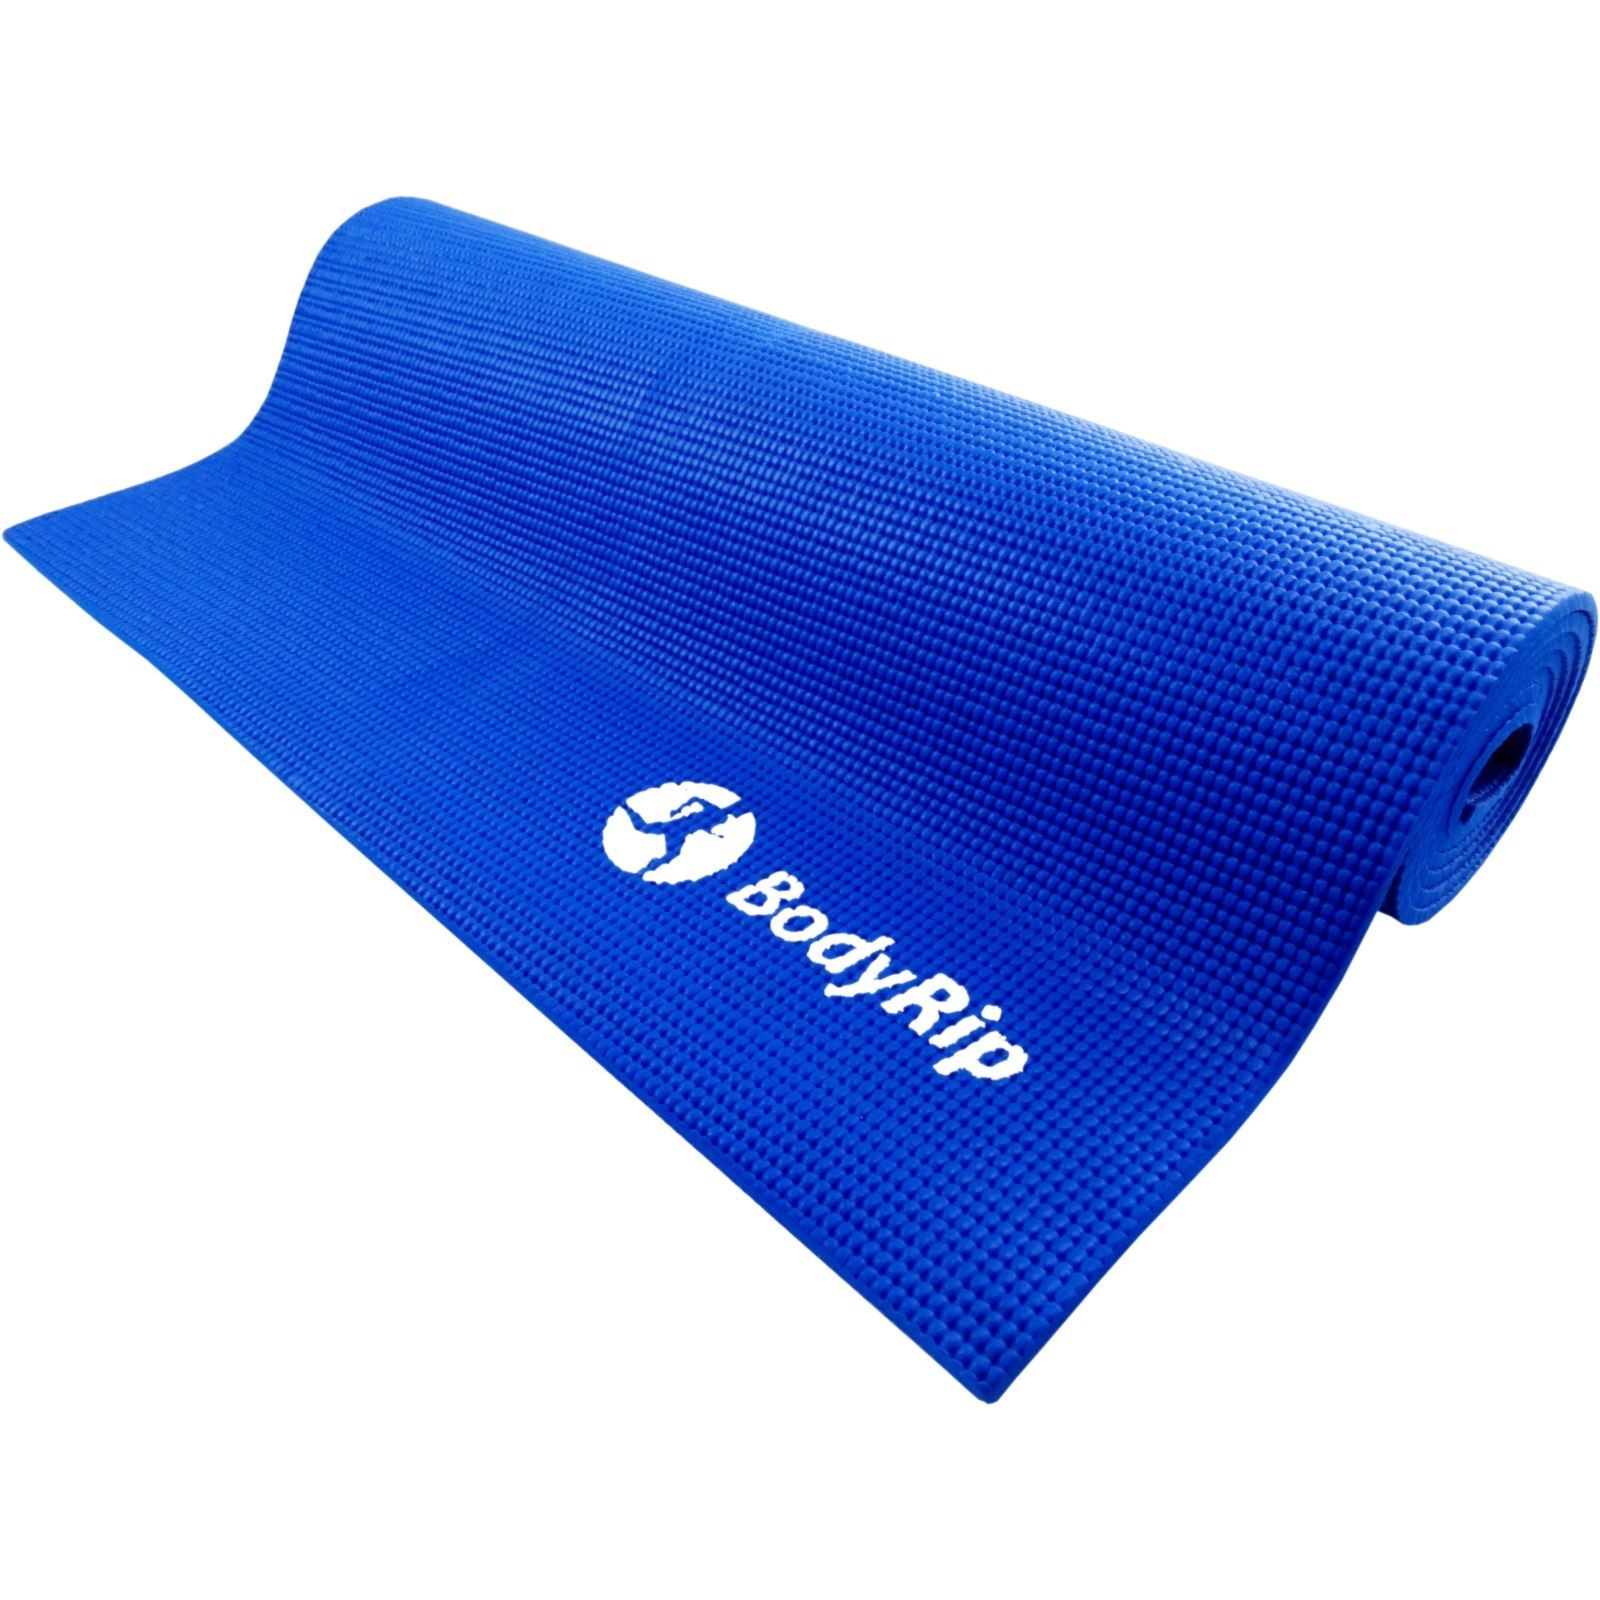 Yoga Pilates Fitness Gymnastic Mats 6mm Workout Gym